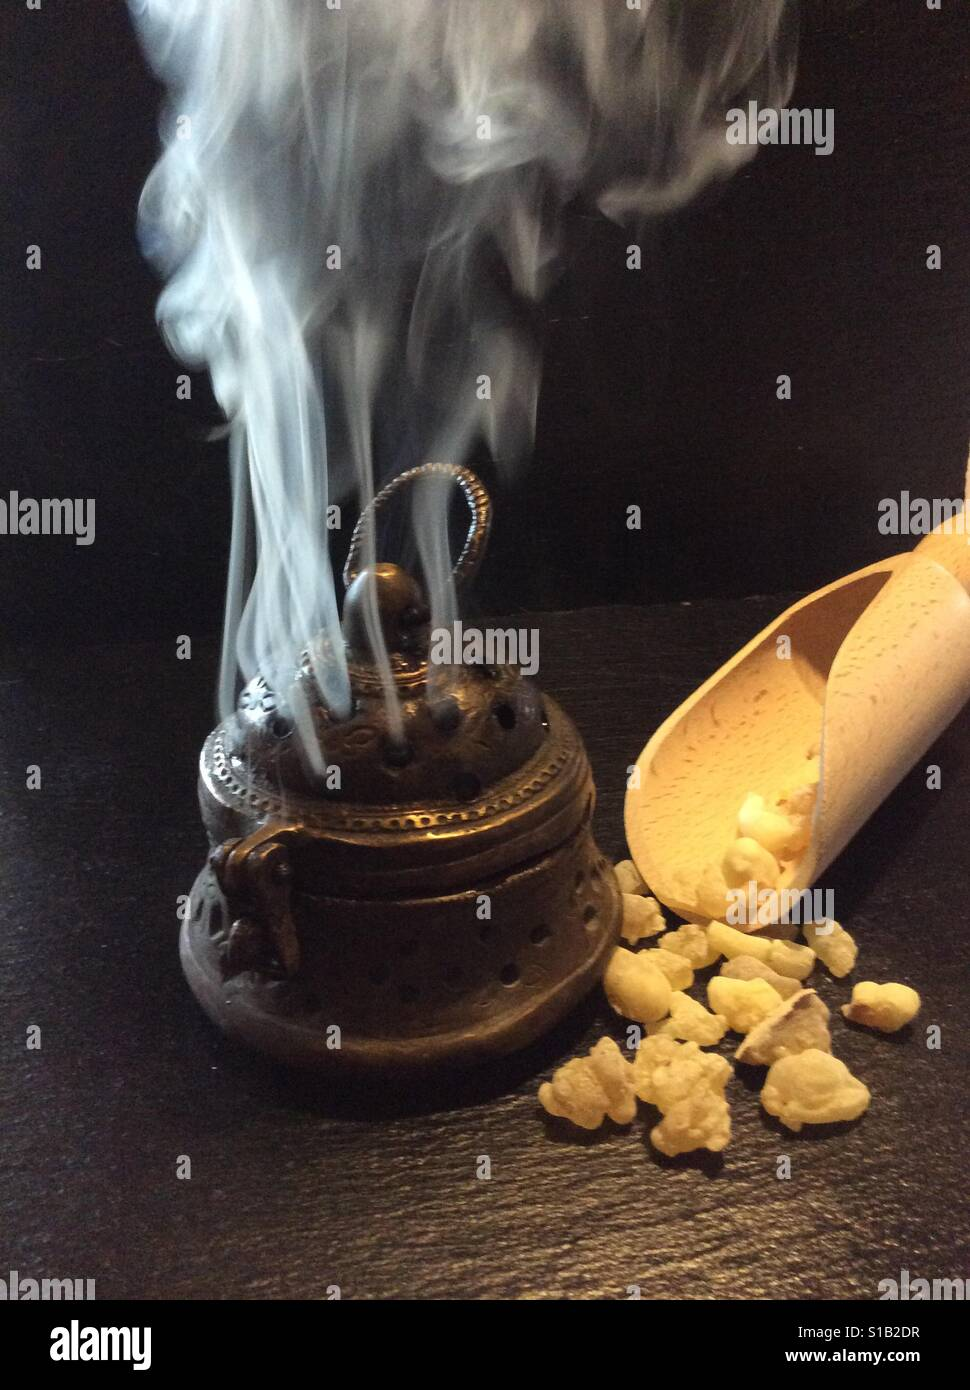 Frankincense from the sultanate Oman and active vintage oriental incense burner - Stock Image